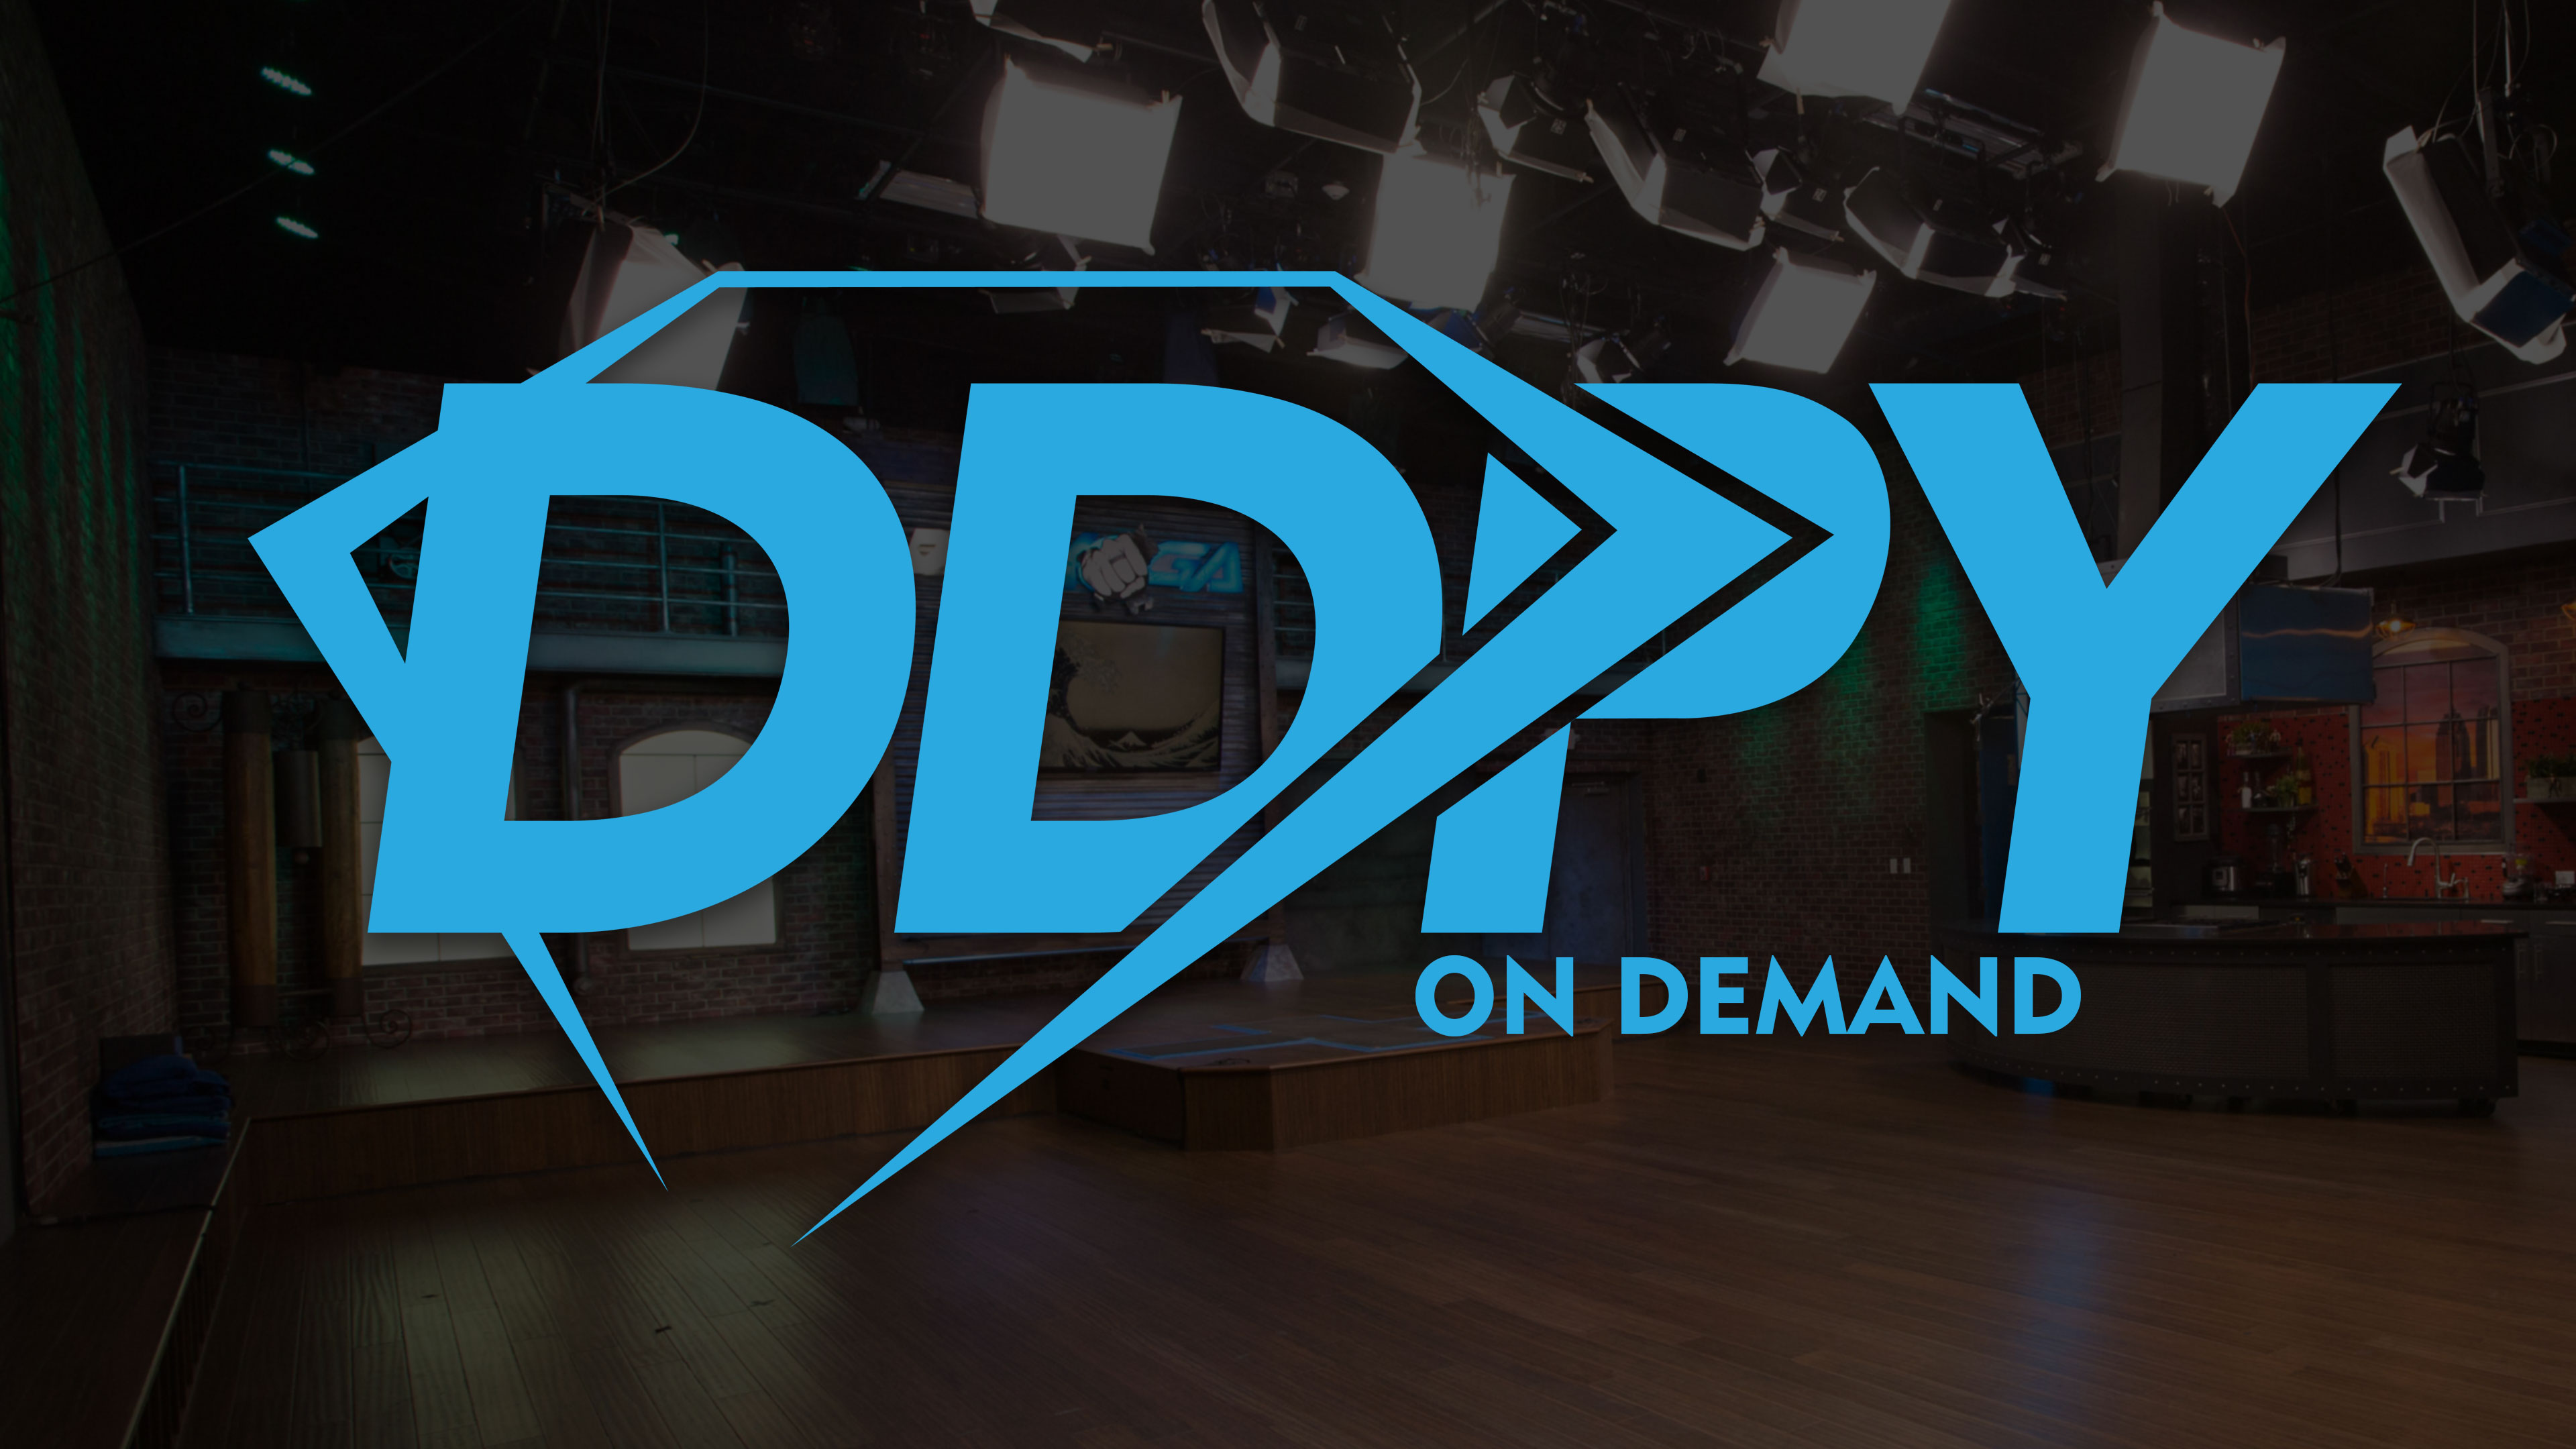 DDPY On Demand